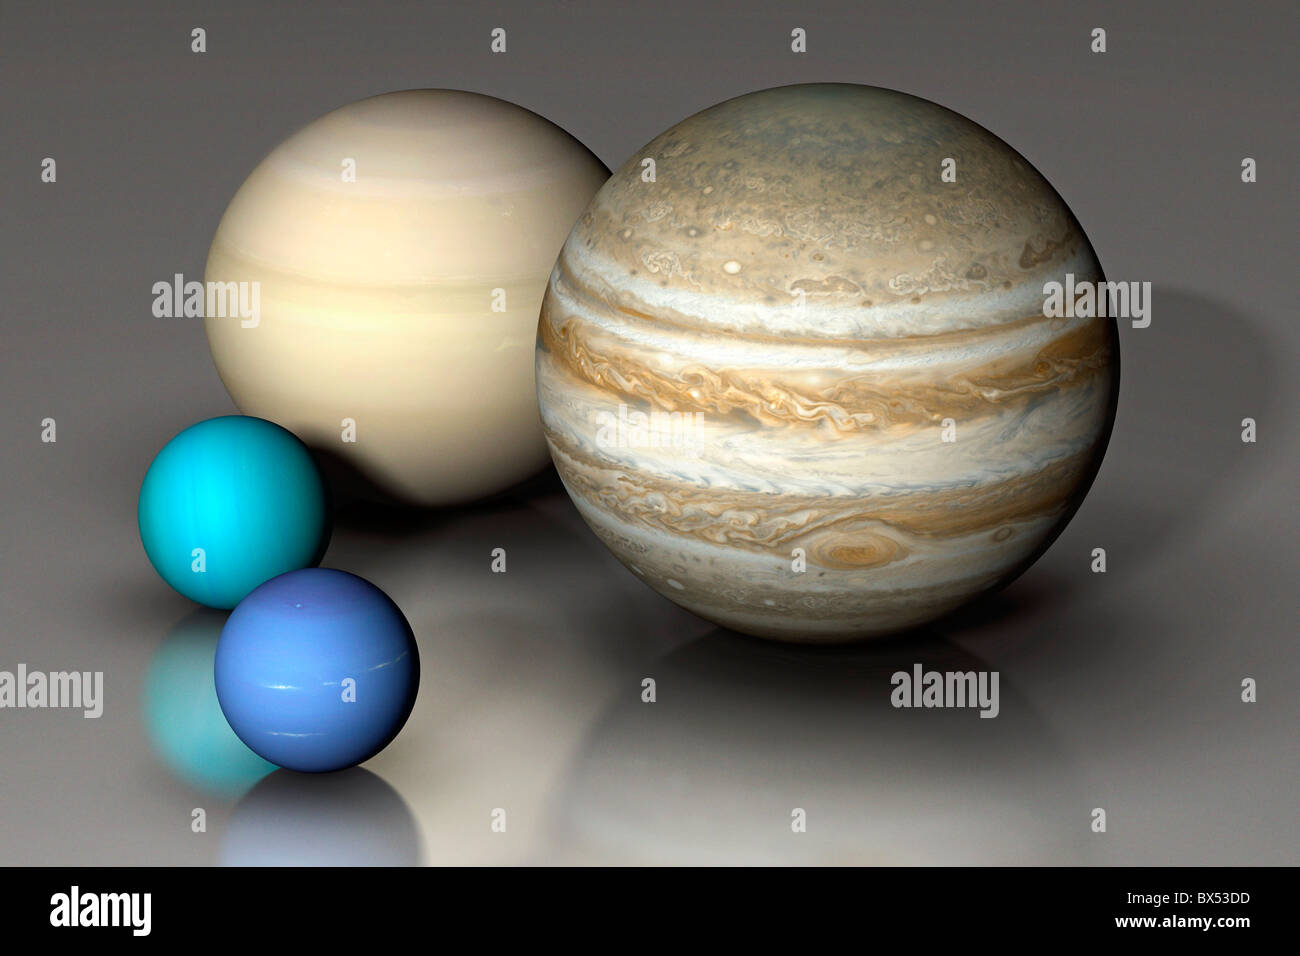 Giant Planets Compared - Stock Image